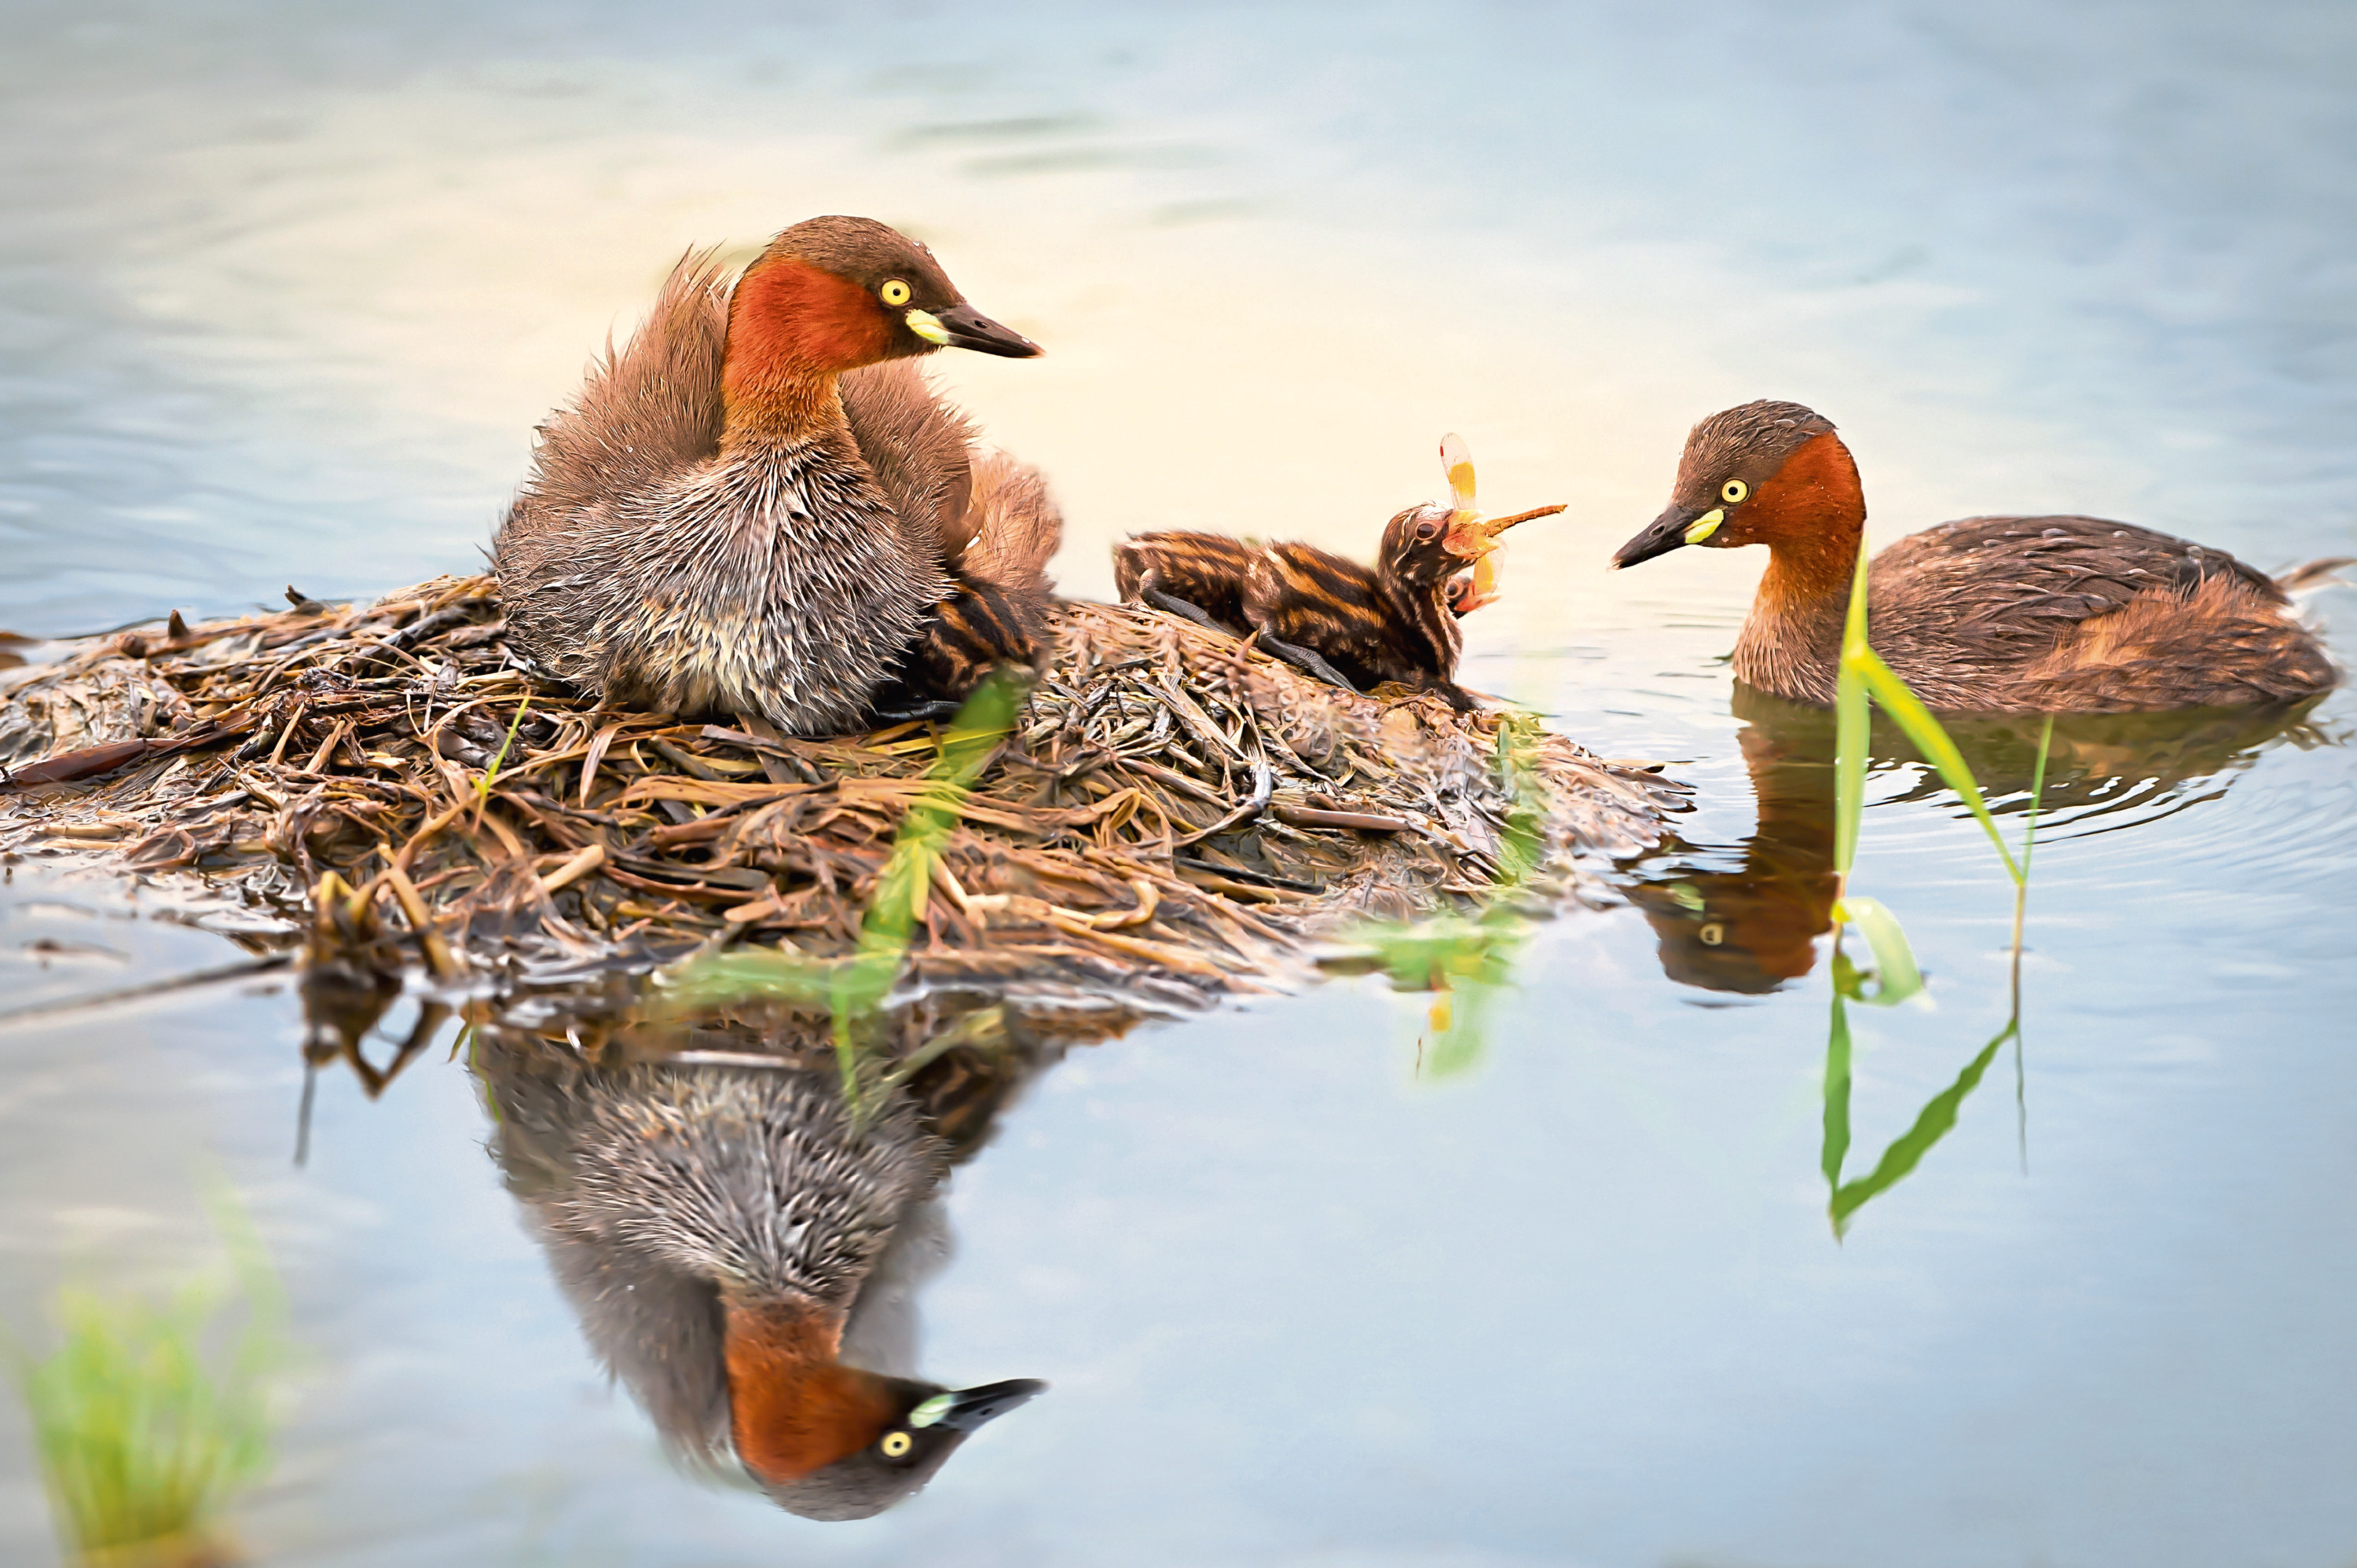 The little grebe, also known as a dabchick.